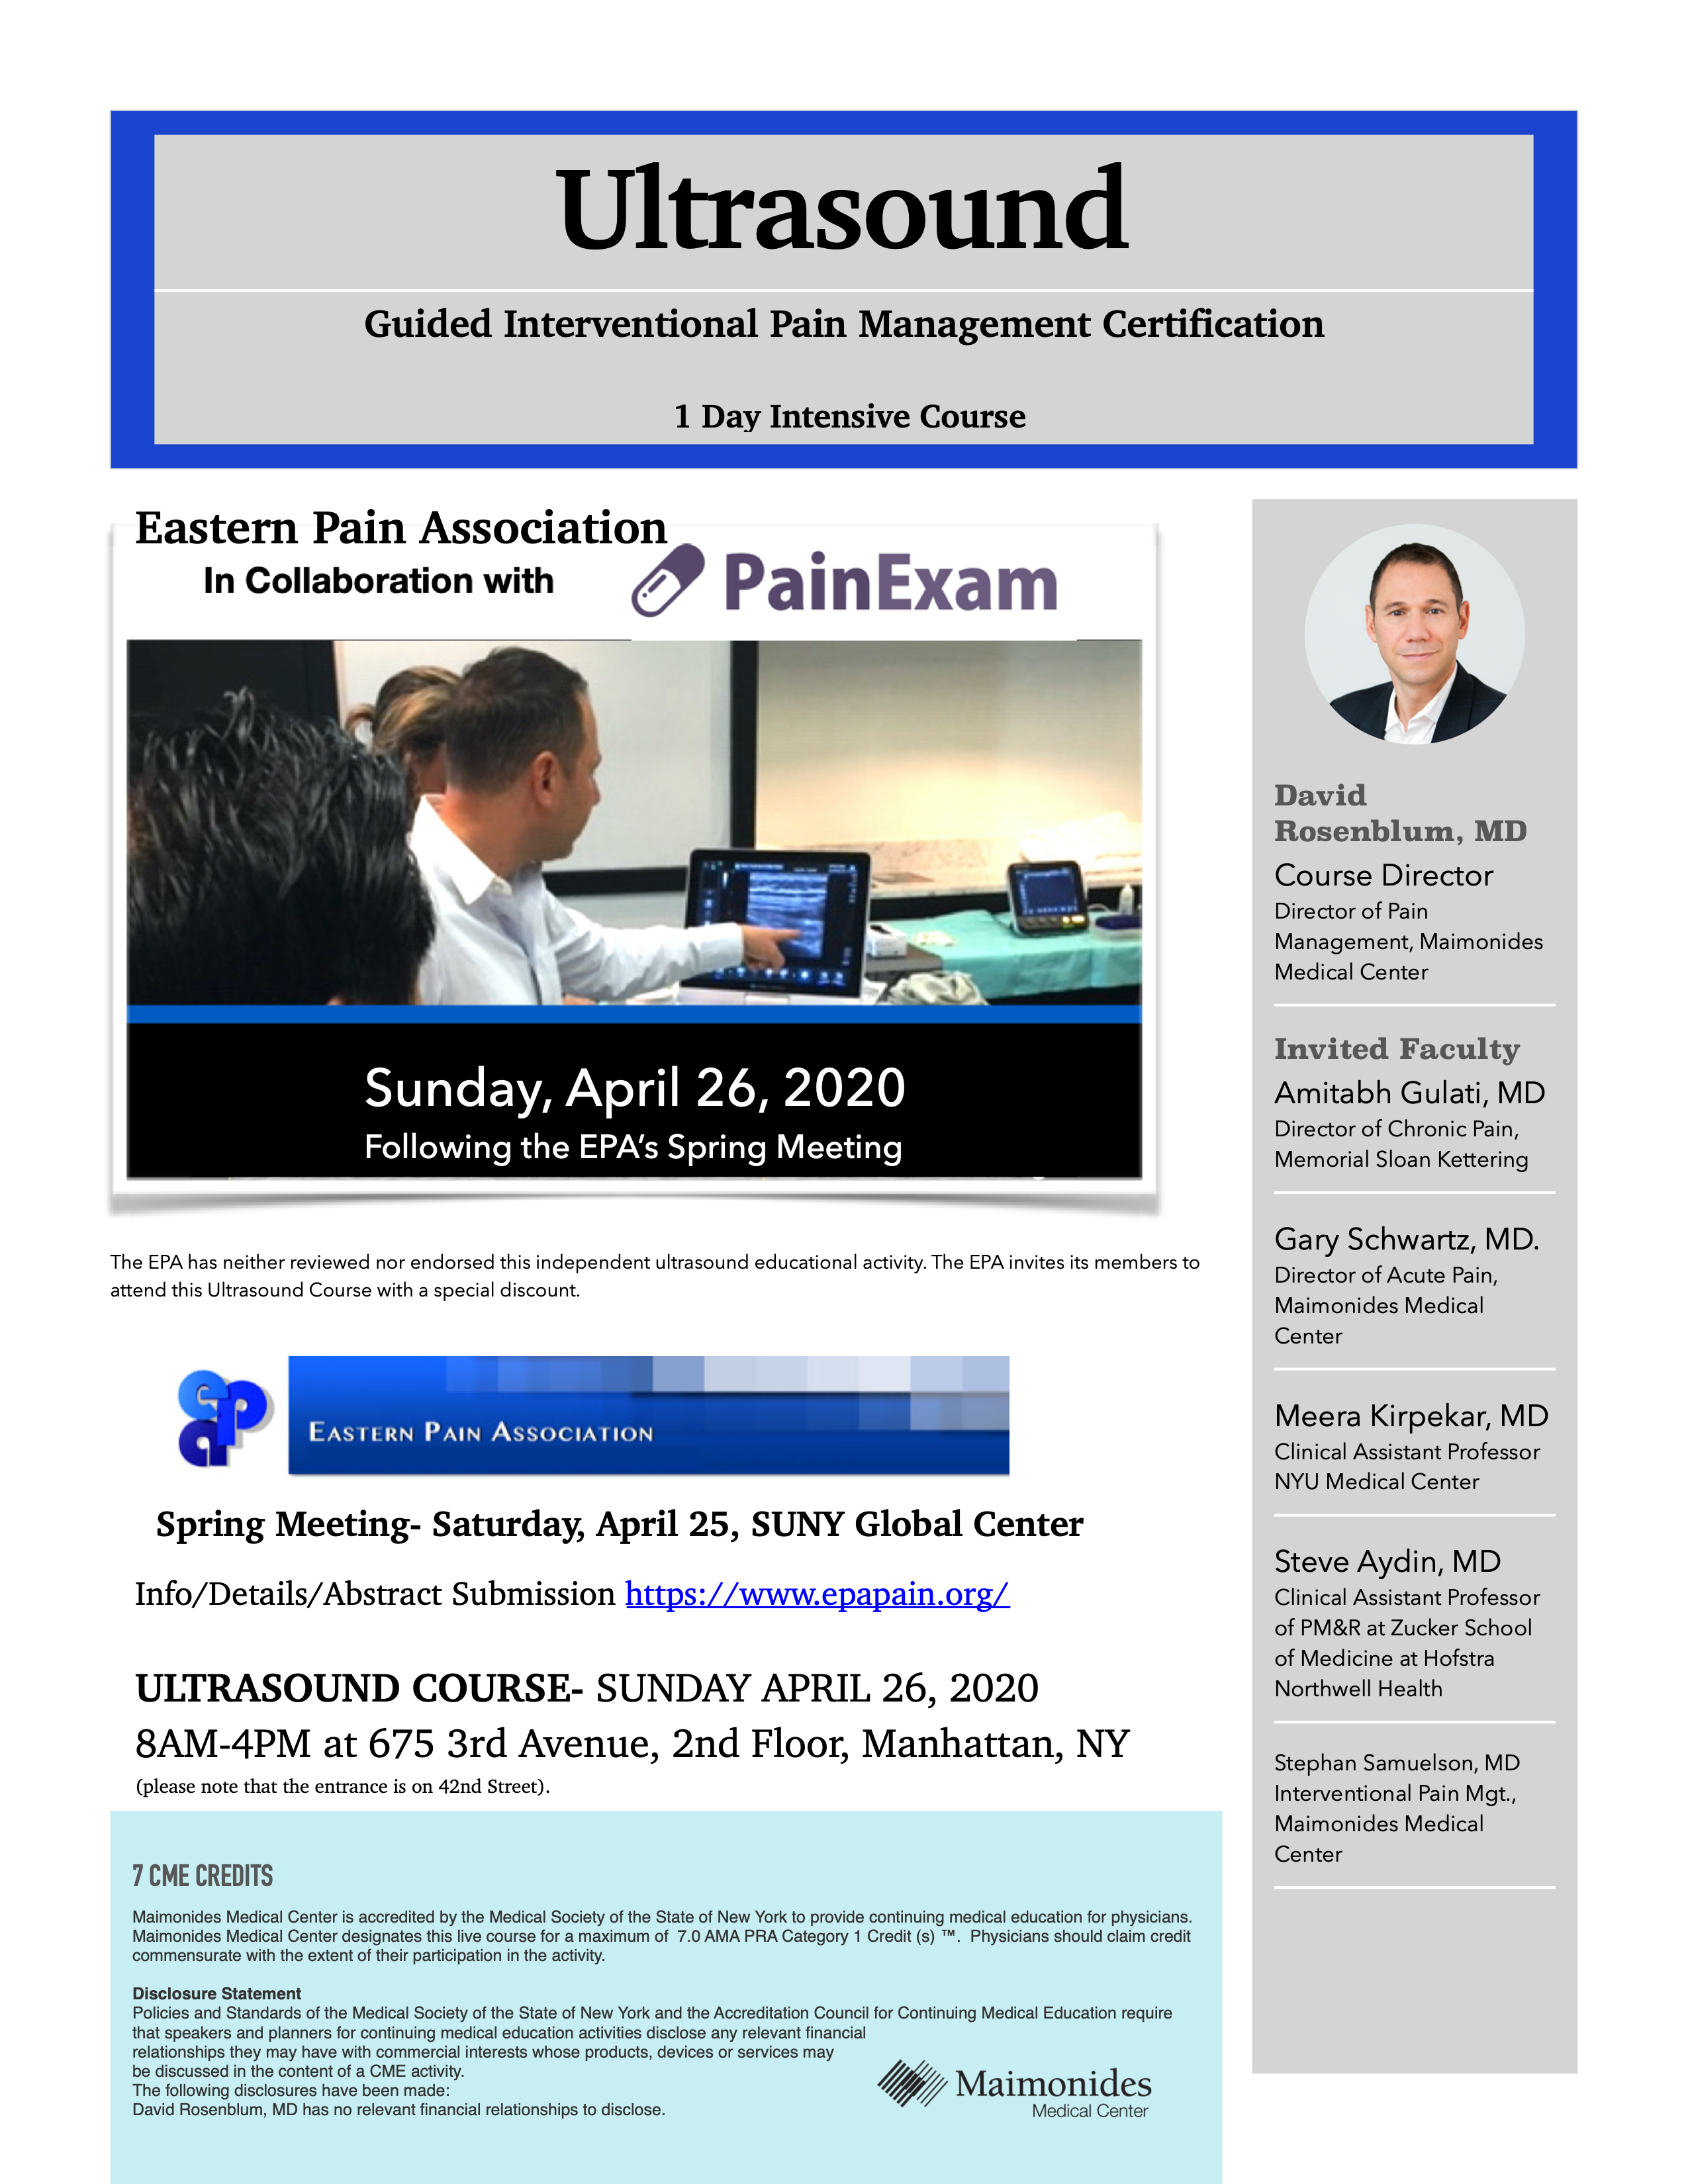 Ultrasound Pain Course NYC - April 26, 2020